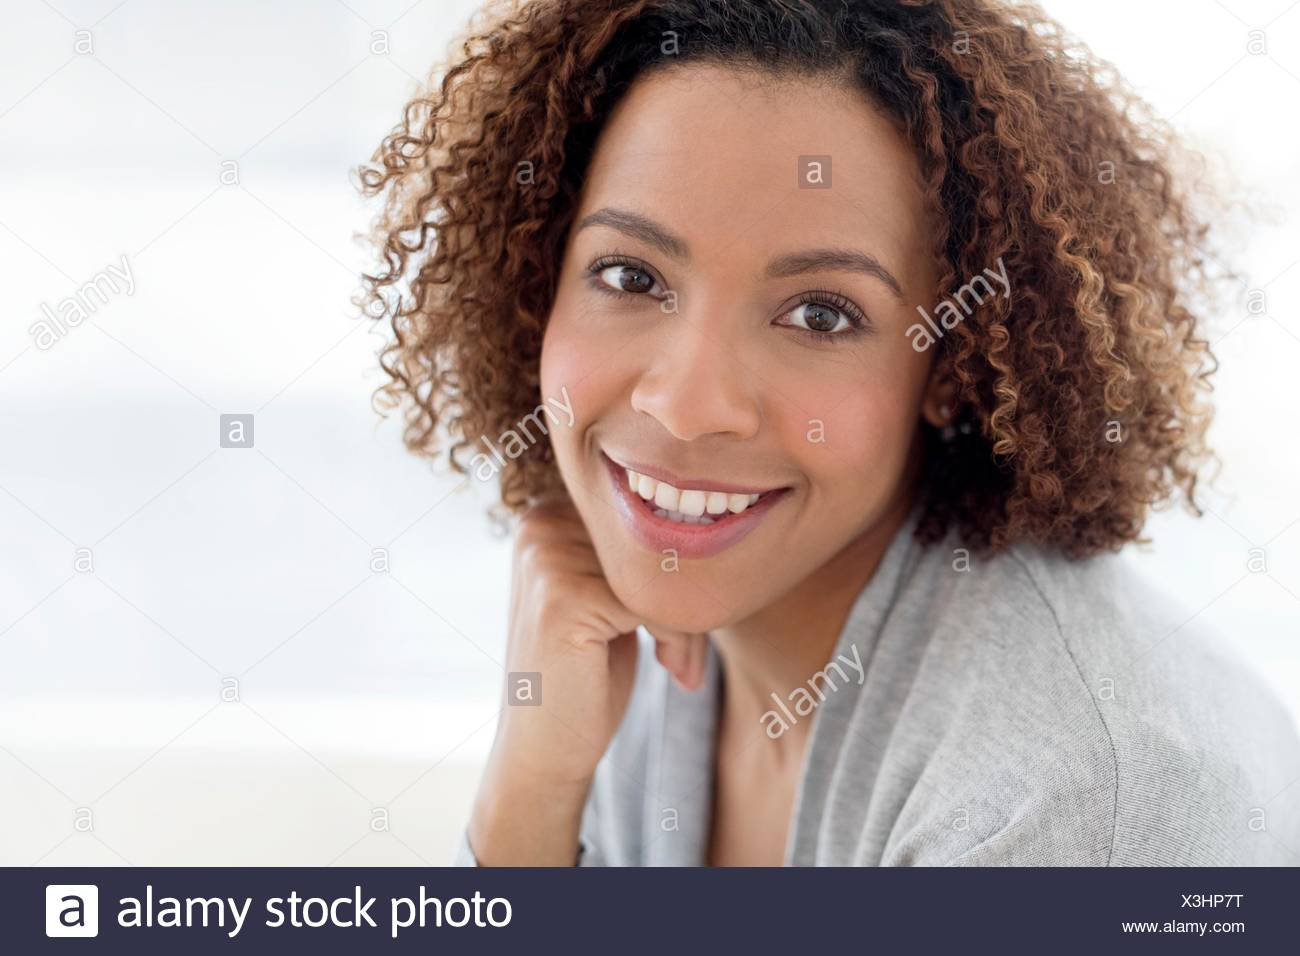 Portrait of mid adult woman smiling. - Stock Image